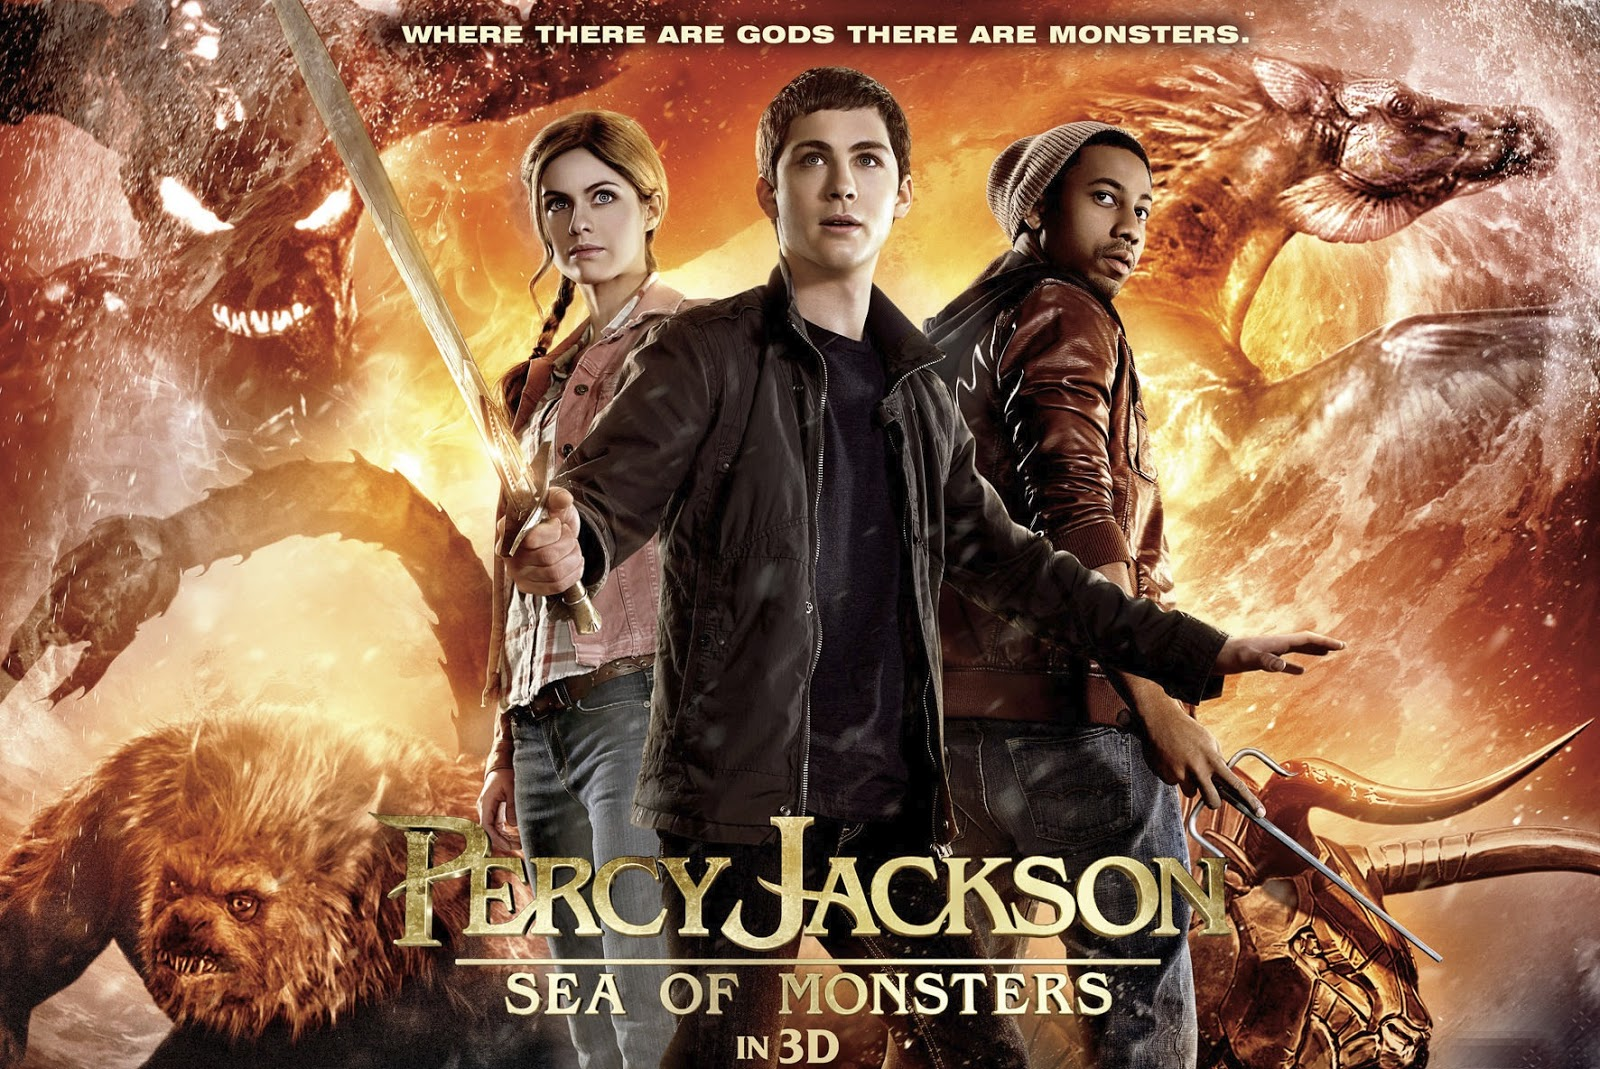 percy jackson sea of monsters book review